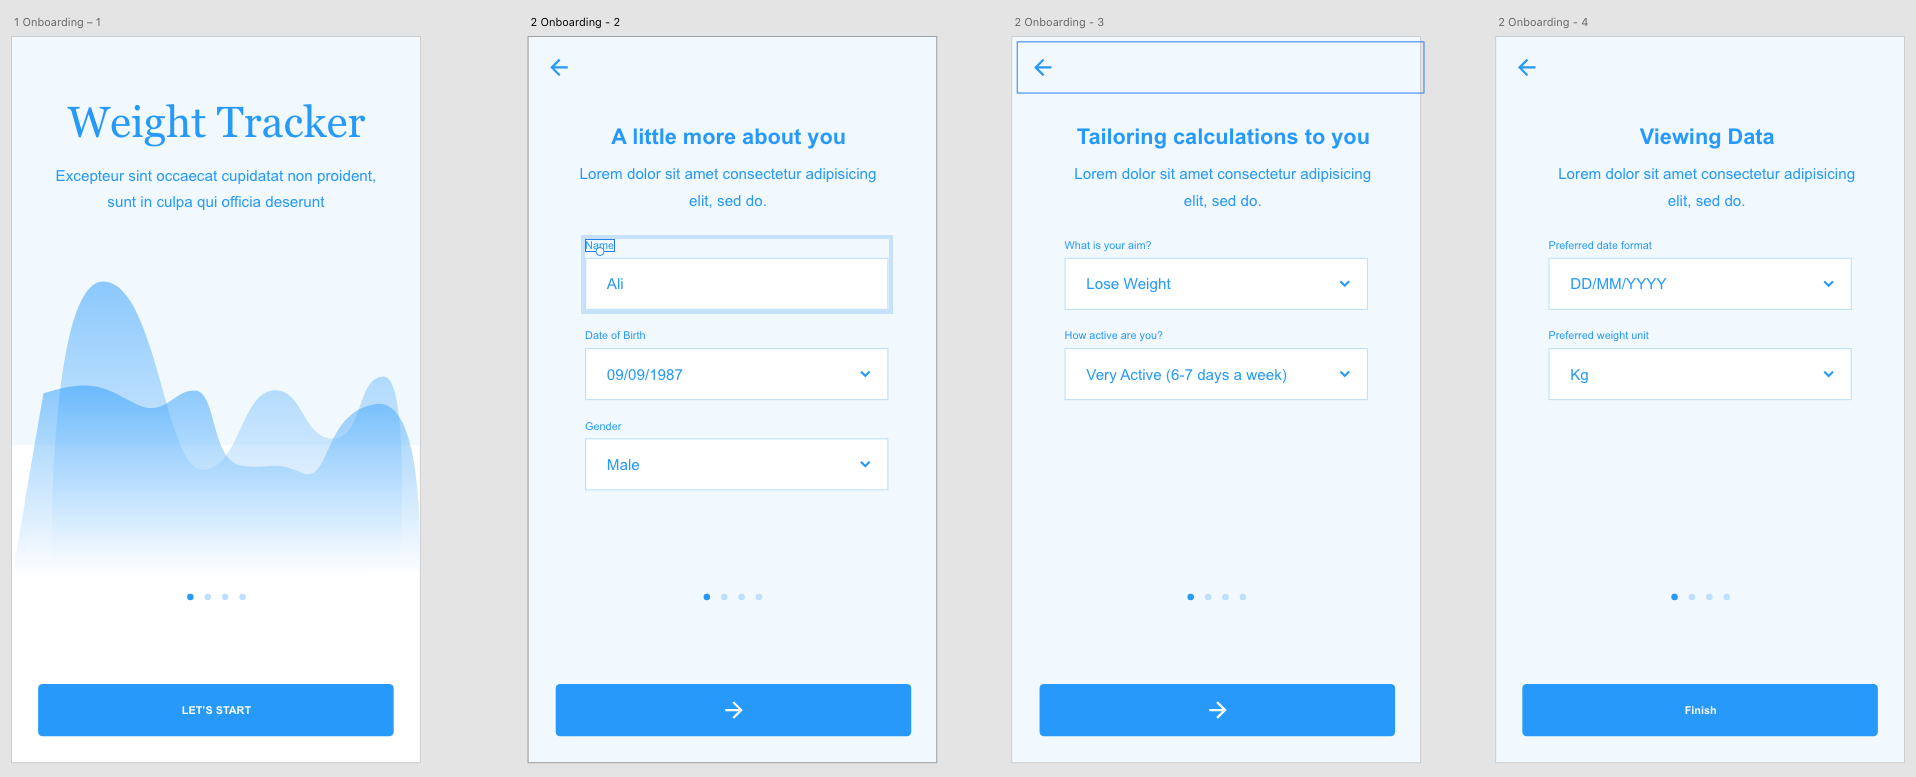 An example mock up of onboarding UI